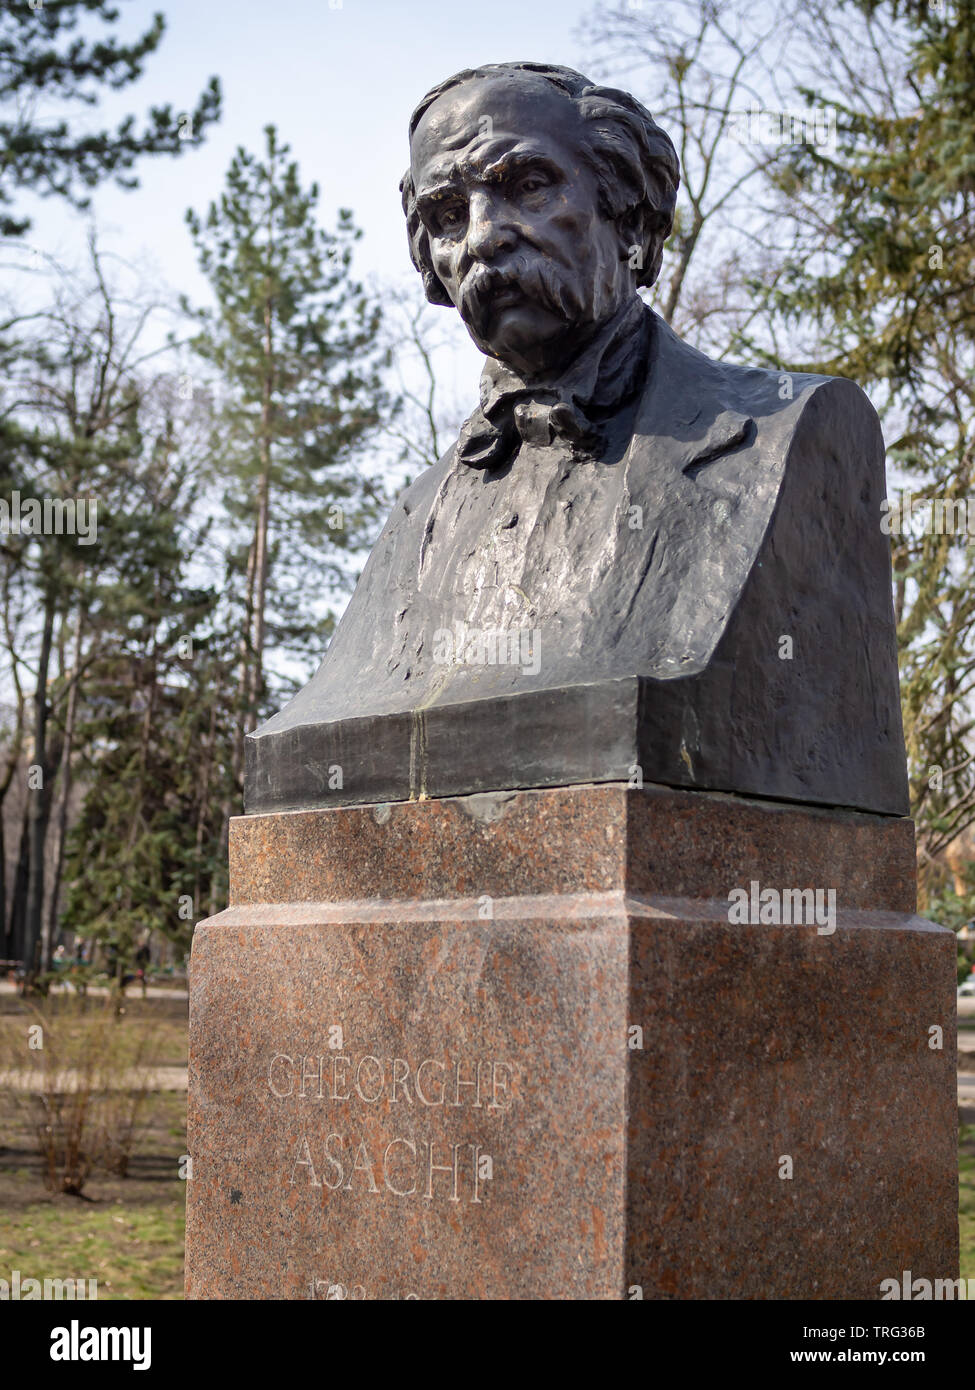 CHISINAU, MOLDOVA-MARCH 21, 2019:  Gheorghe Asachi bust by Lazar Dubinovschi in the Alley of Classics - Stock Image